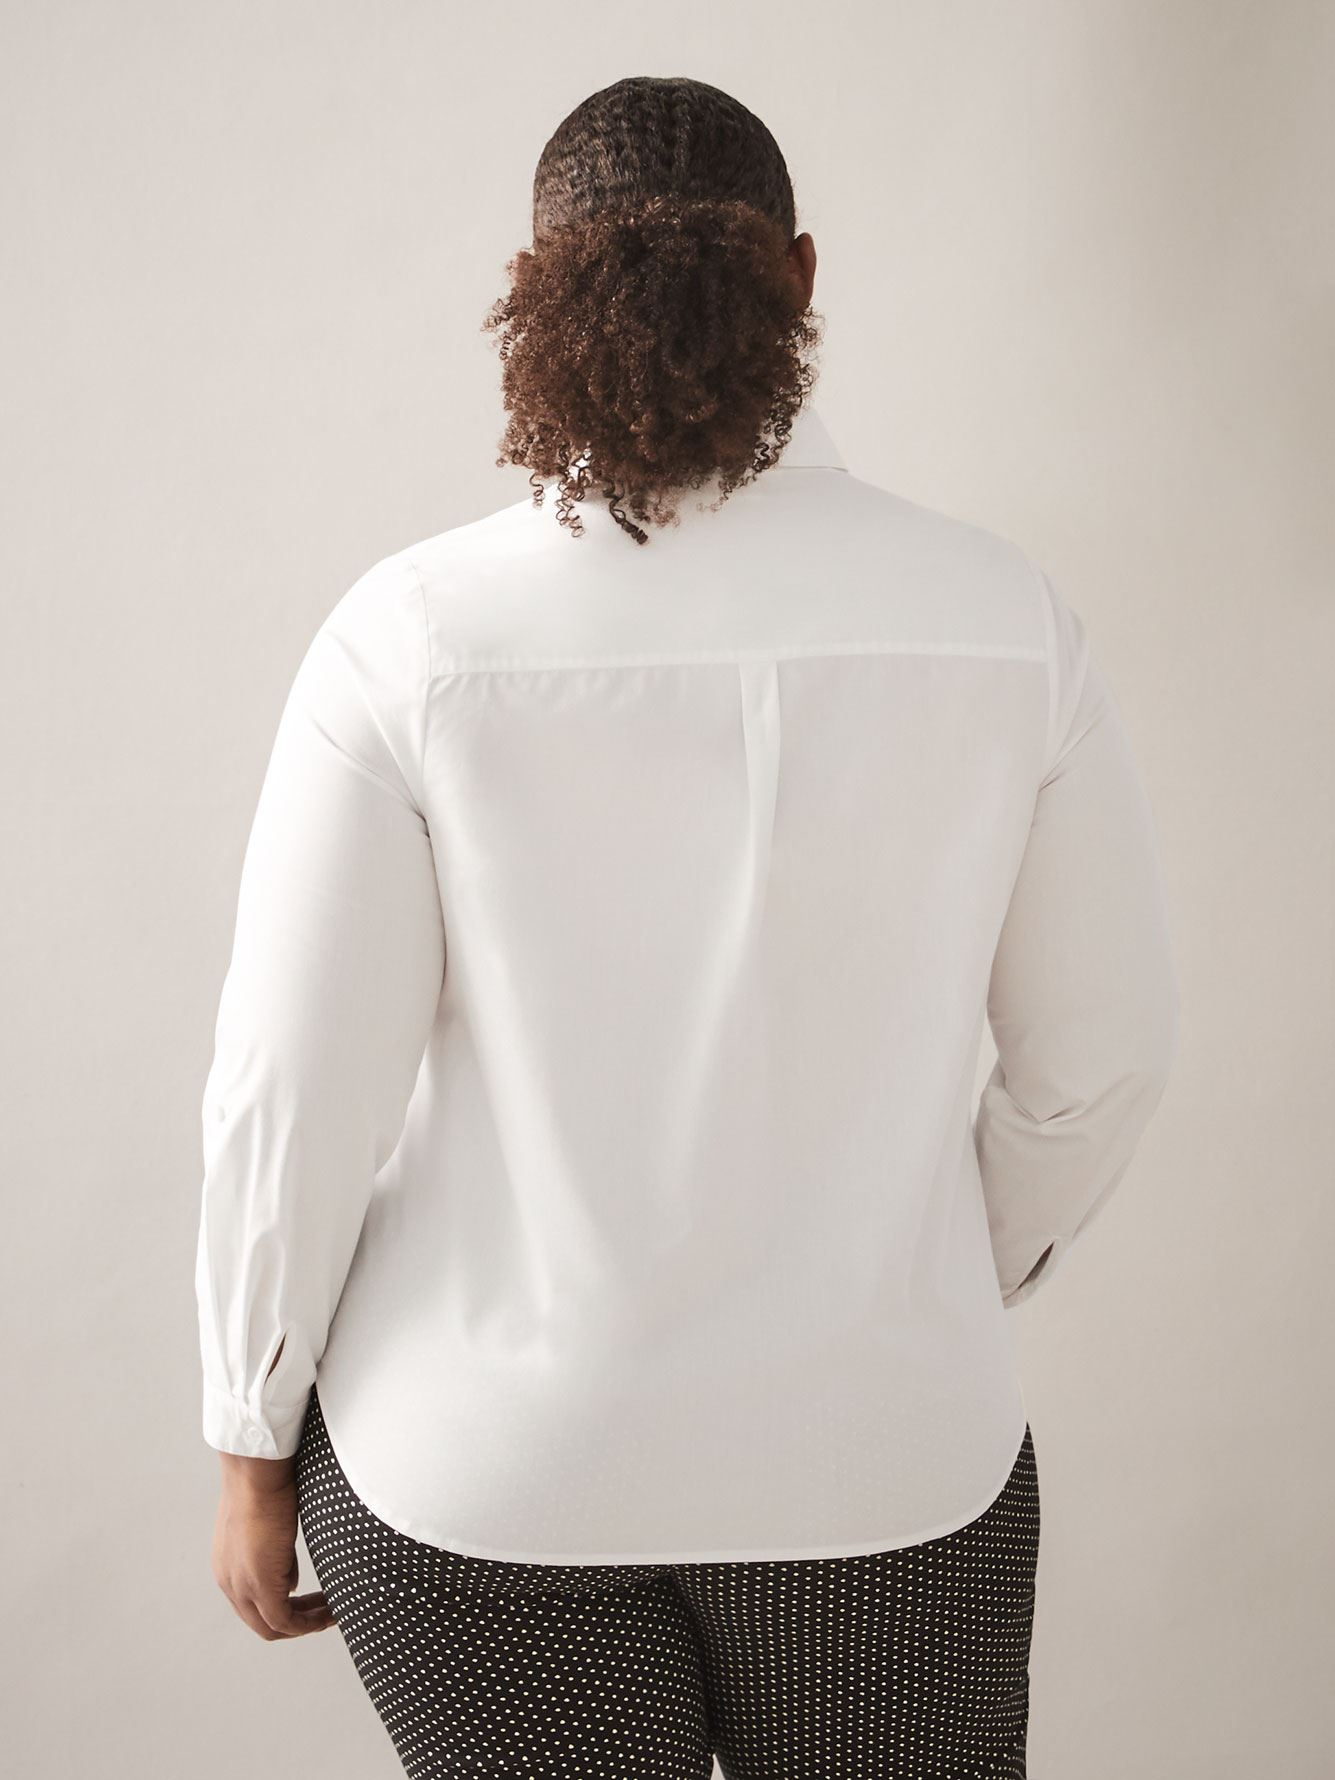 Blouse poplin structurée - In Every Story